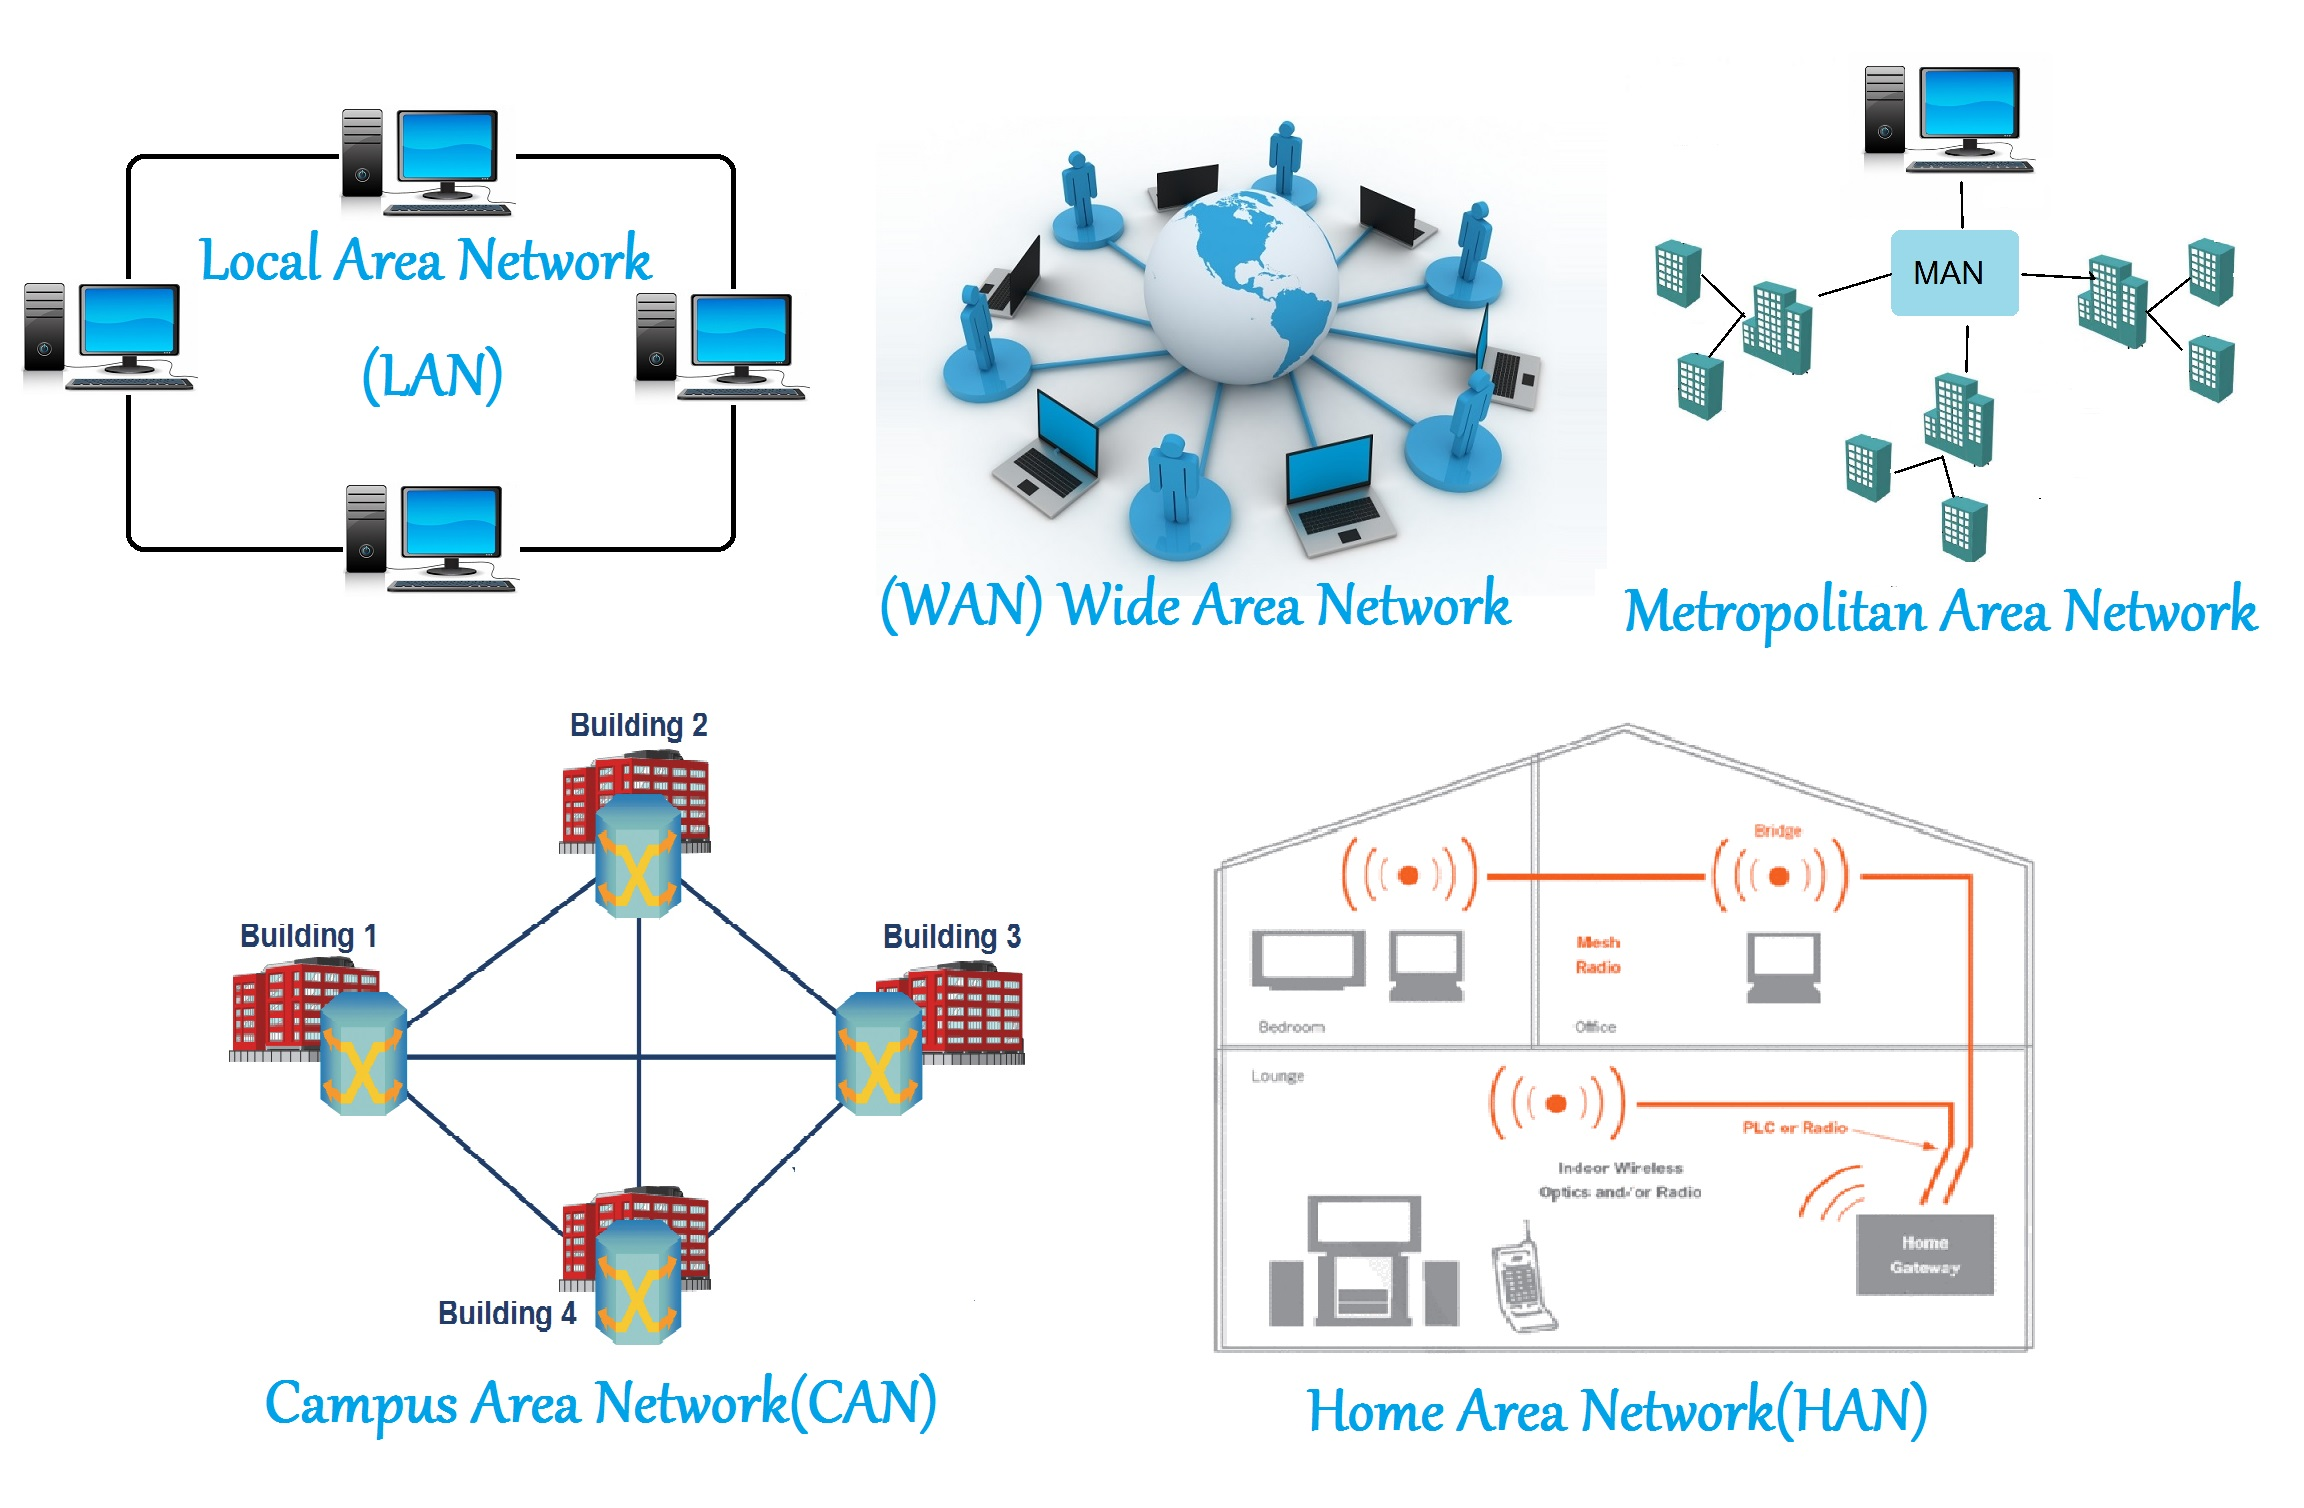 Area Networks Han Computer And Network Examples Network Diagram